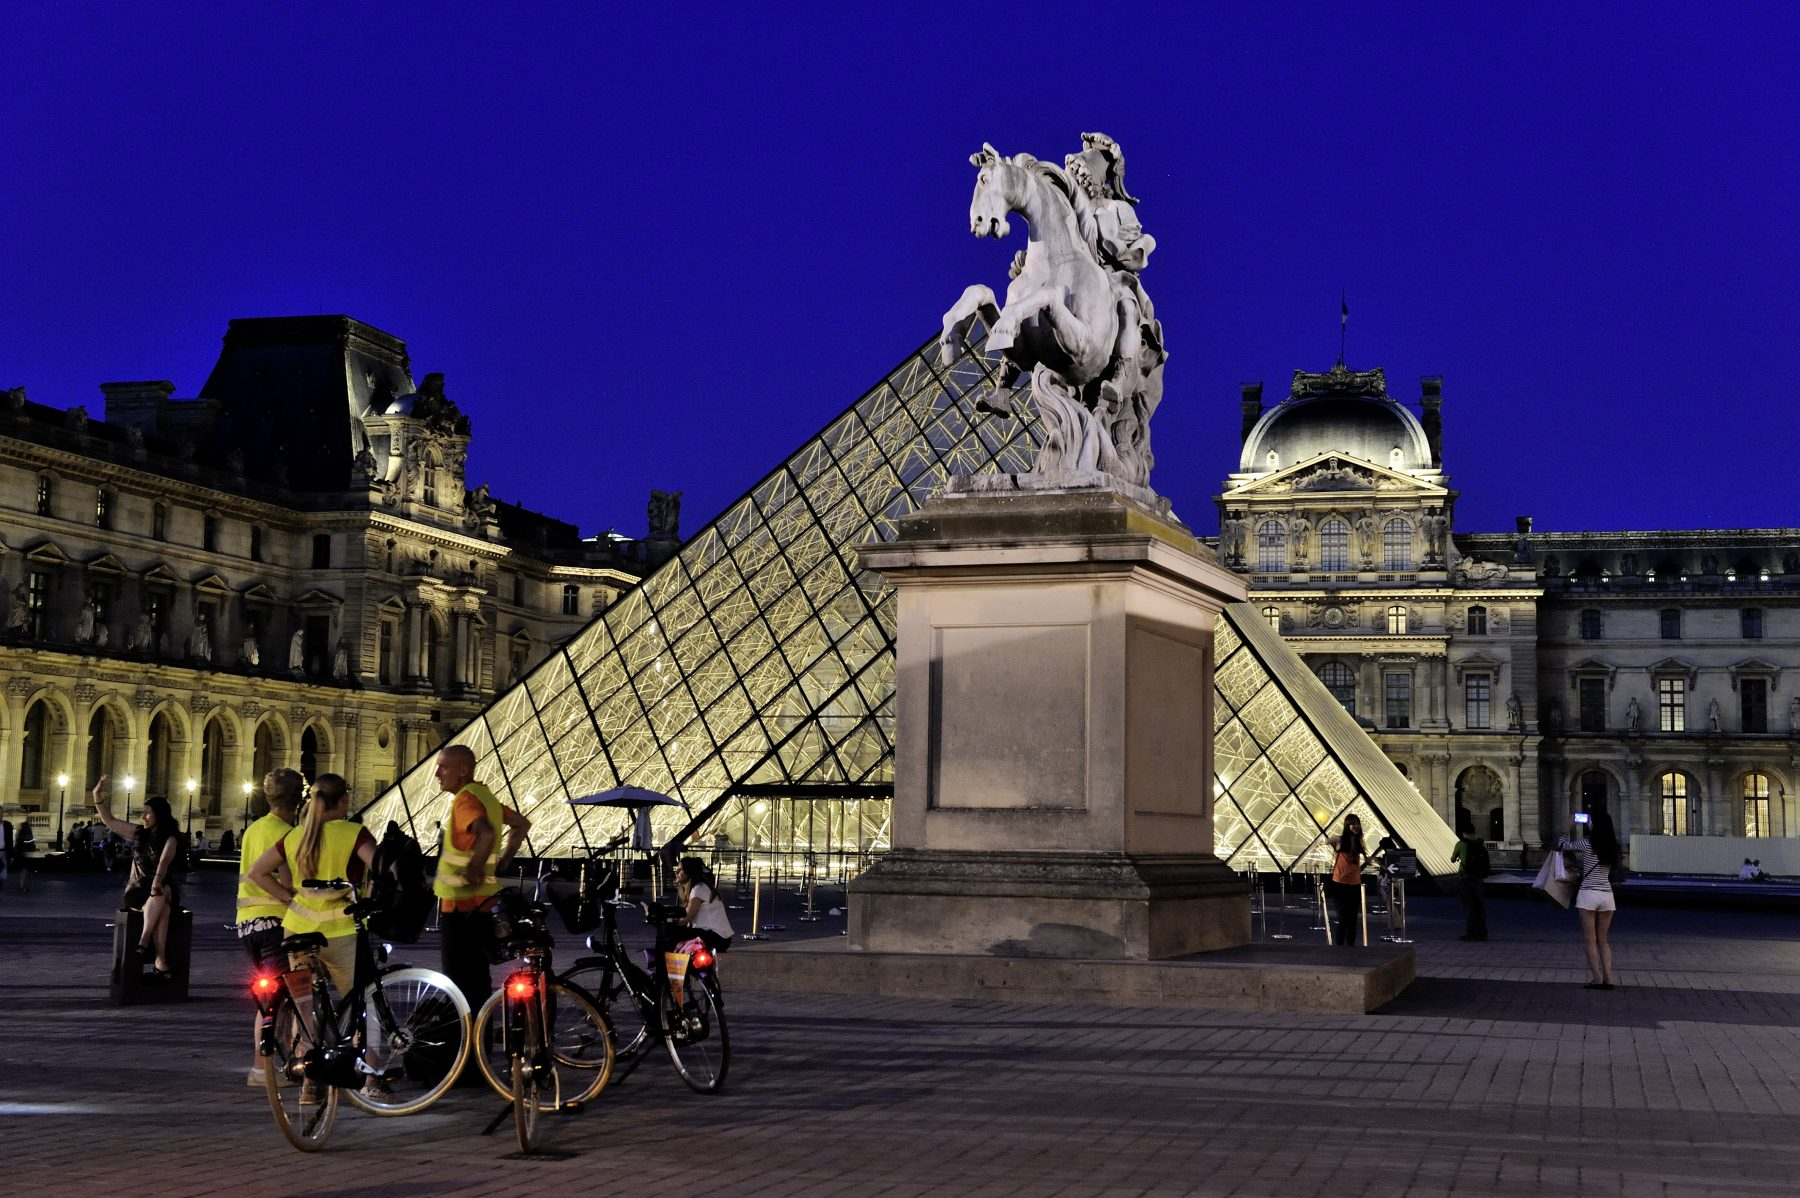 FRANCE, PARIS (75) 1ST ARRONDISSEMENT, THE LOUVRE MUSEUM AND THE PYRAMID AT NIGHT, BIKE TOUR WITH TOURIST GUIDE